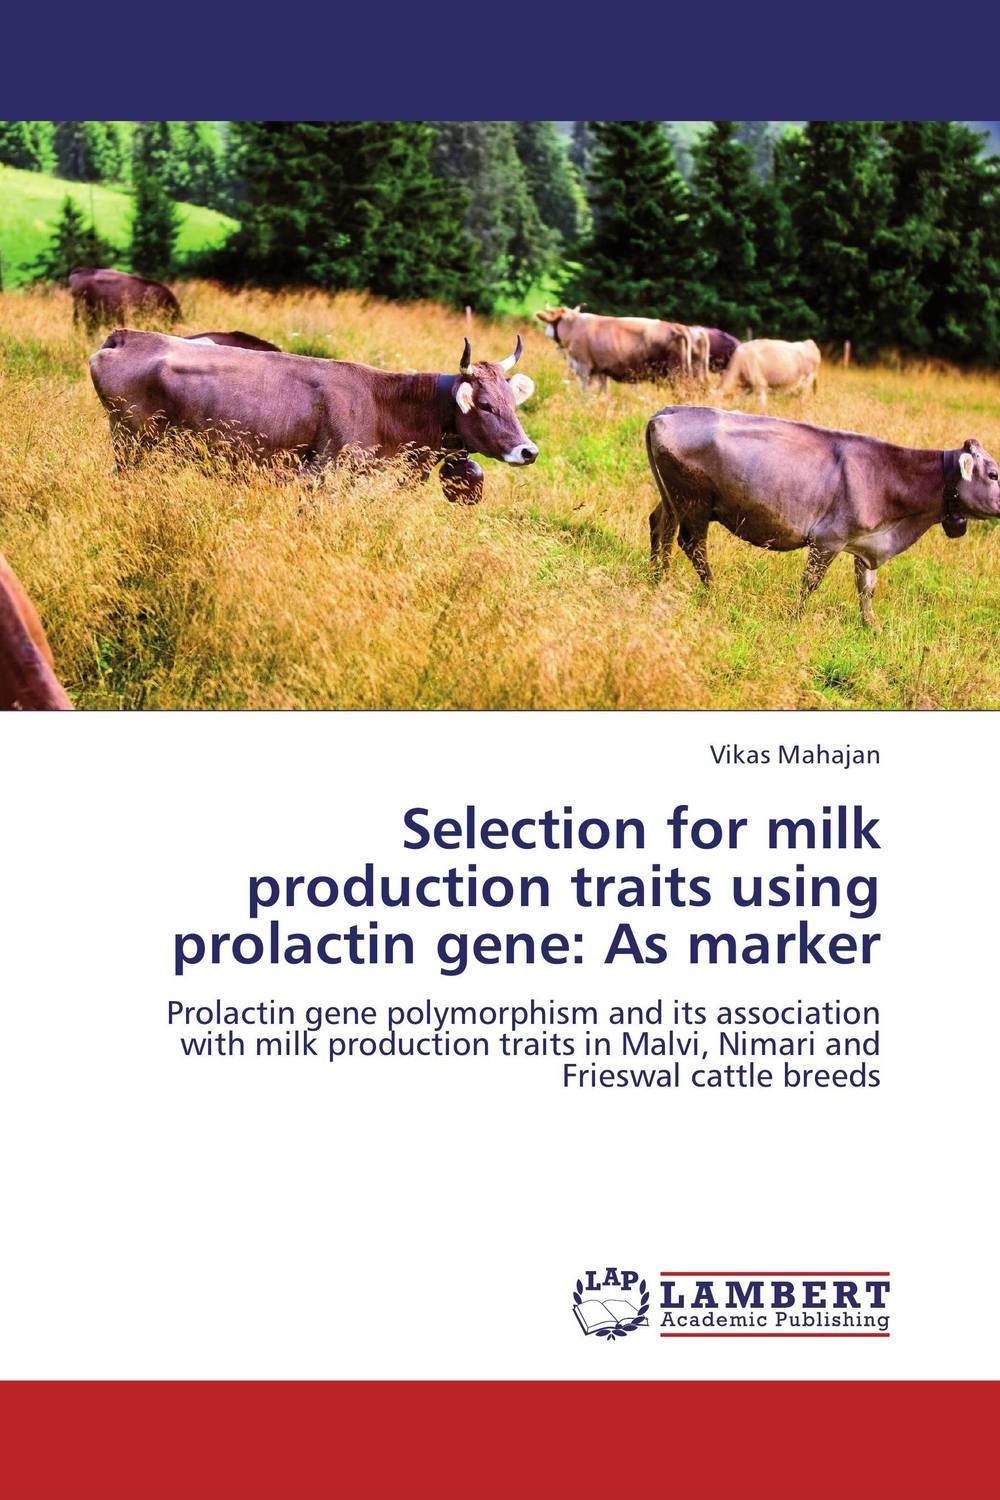 Selection for milk production traits using prolactin gene: As marker